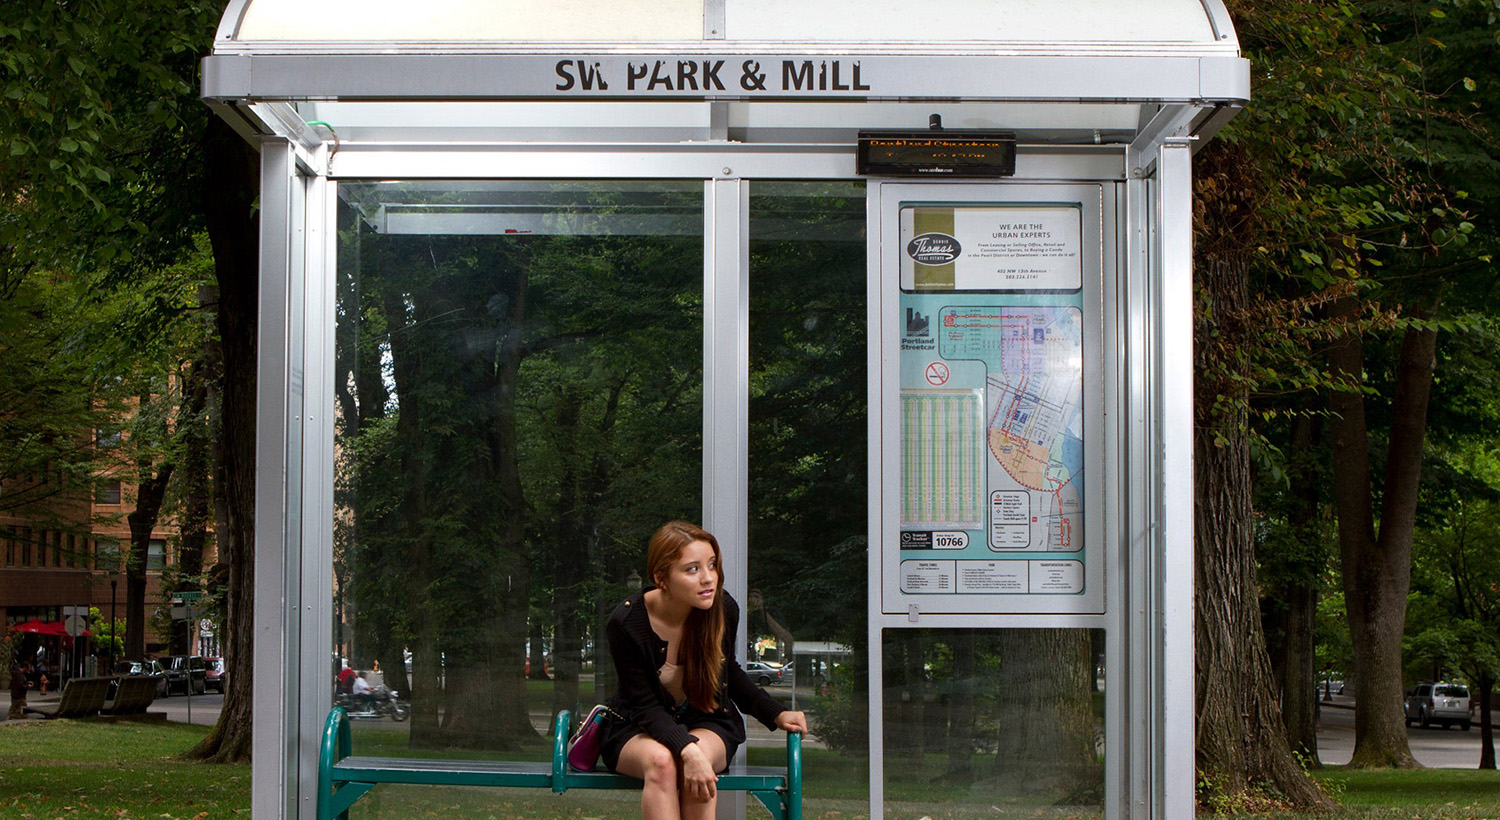 Passenger waiting in a bus stop